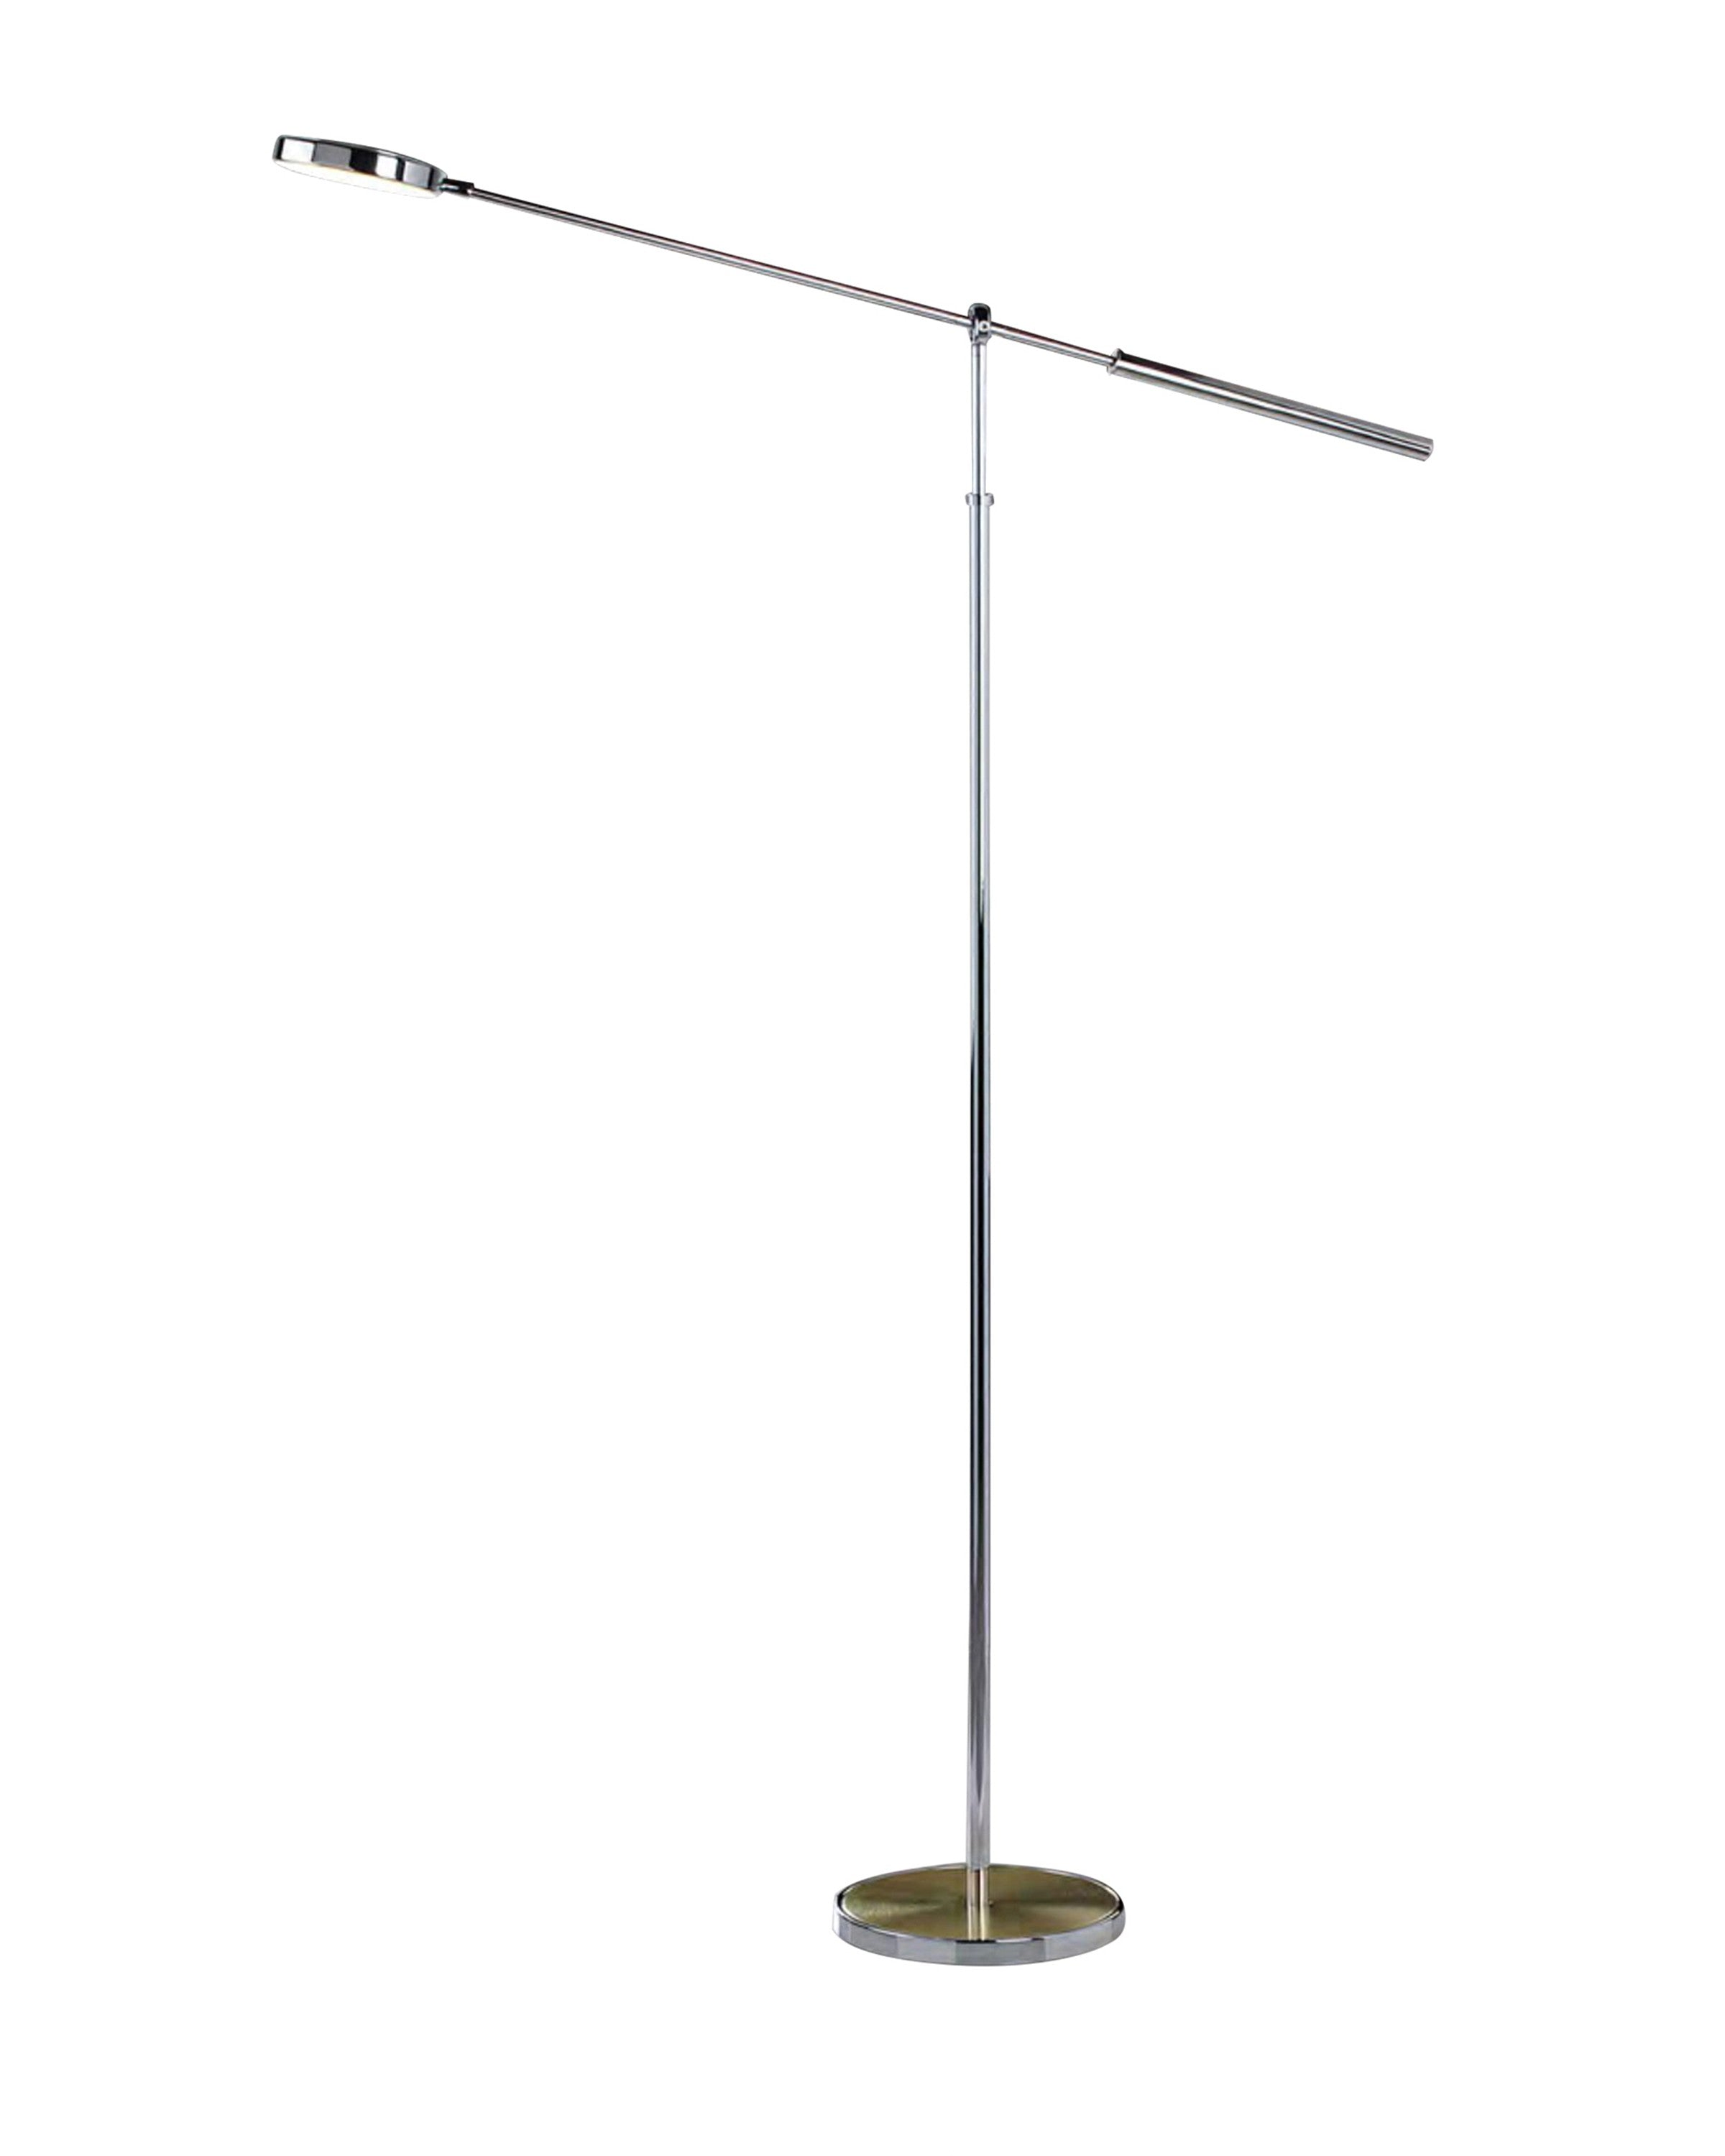 DIPA STANDING LAMP ANGIE HOMES